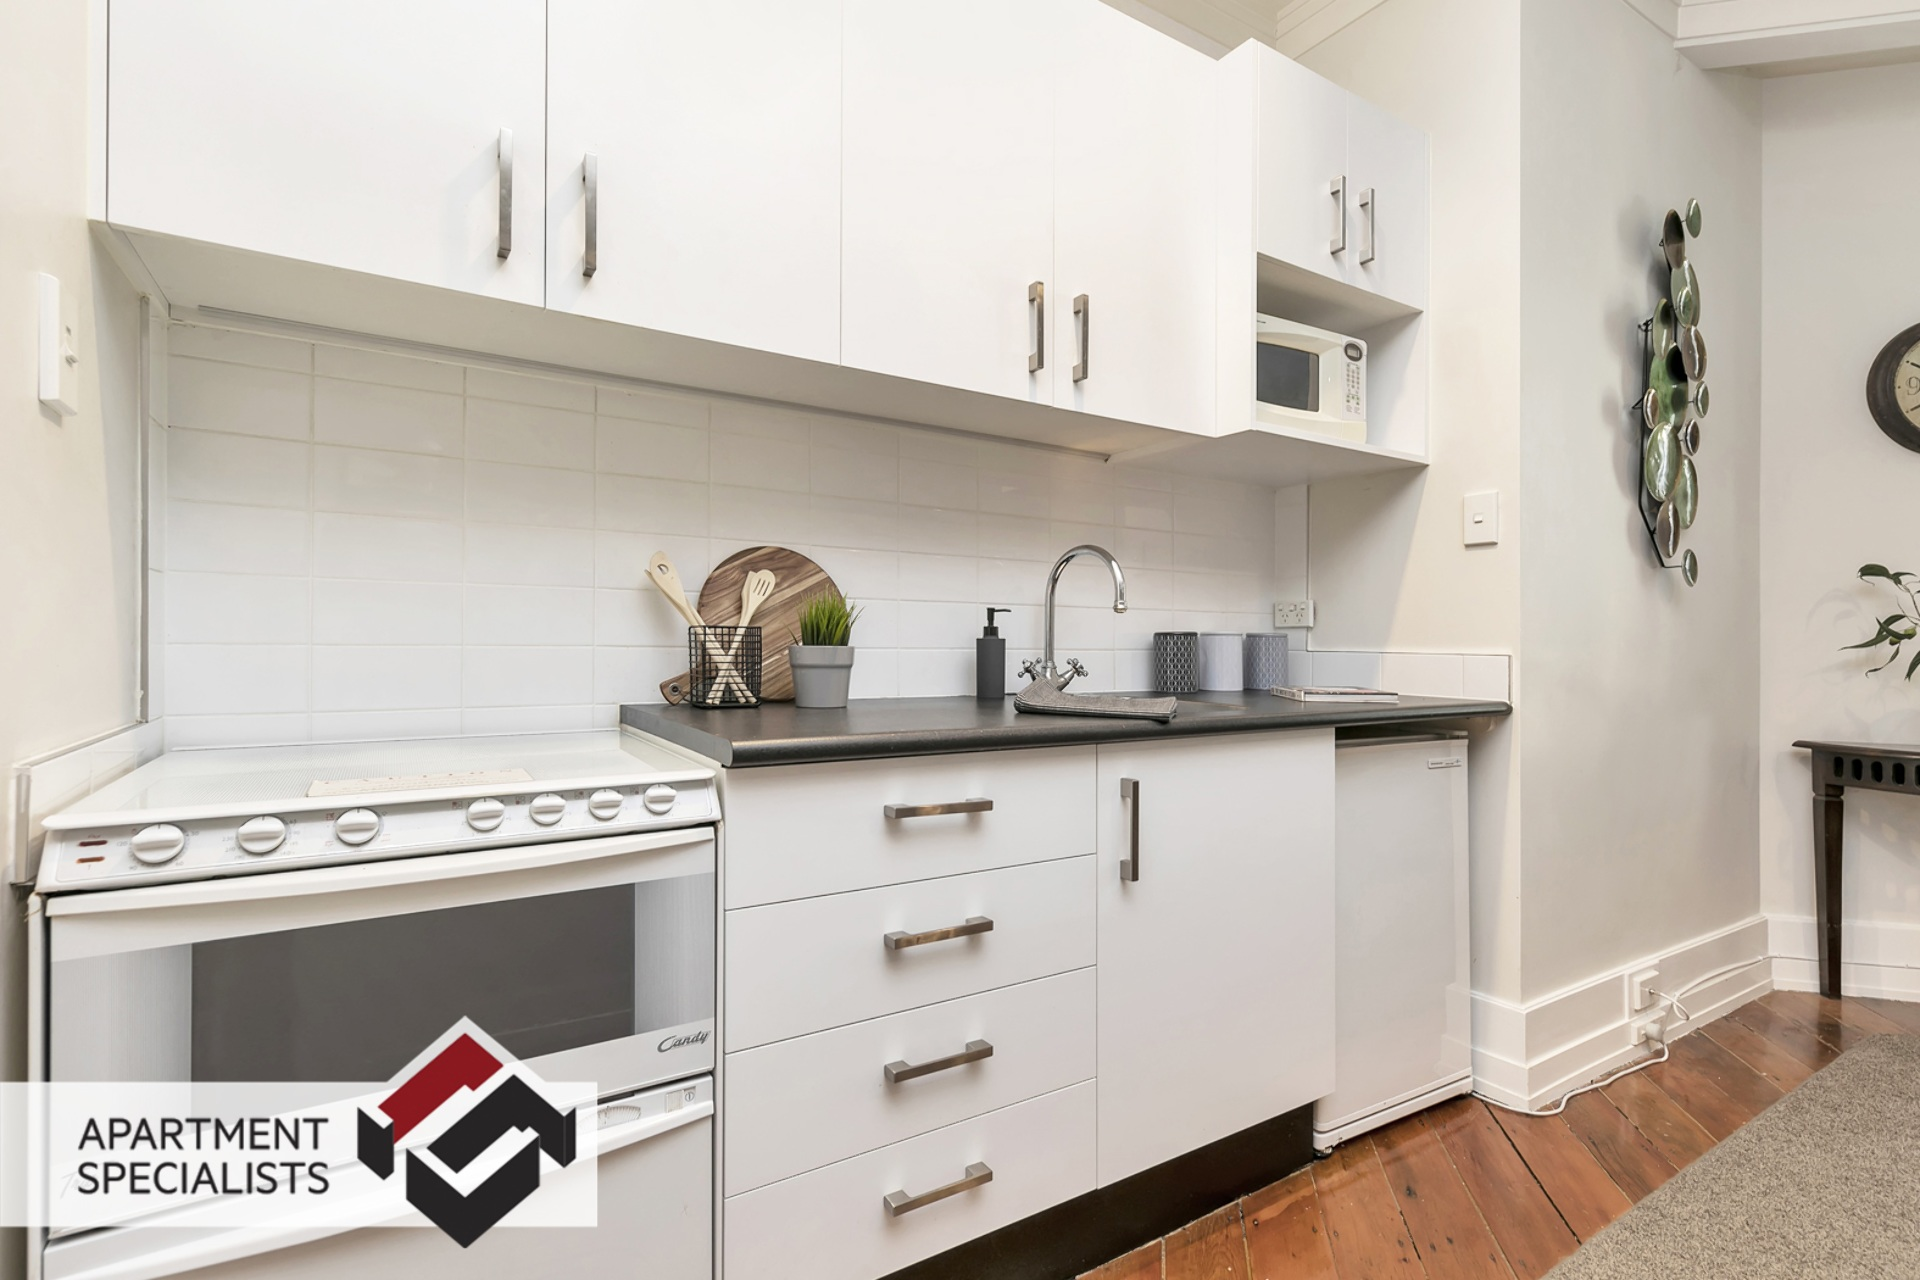 4 | 35 Hobson Street, City Centre | Apartment Specialists